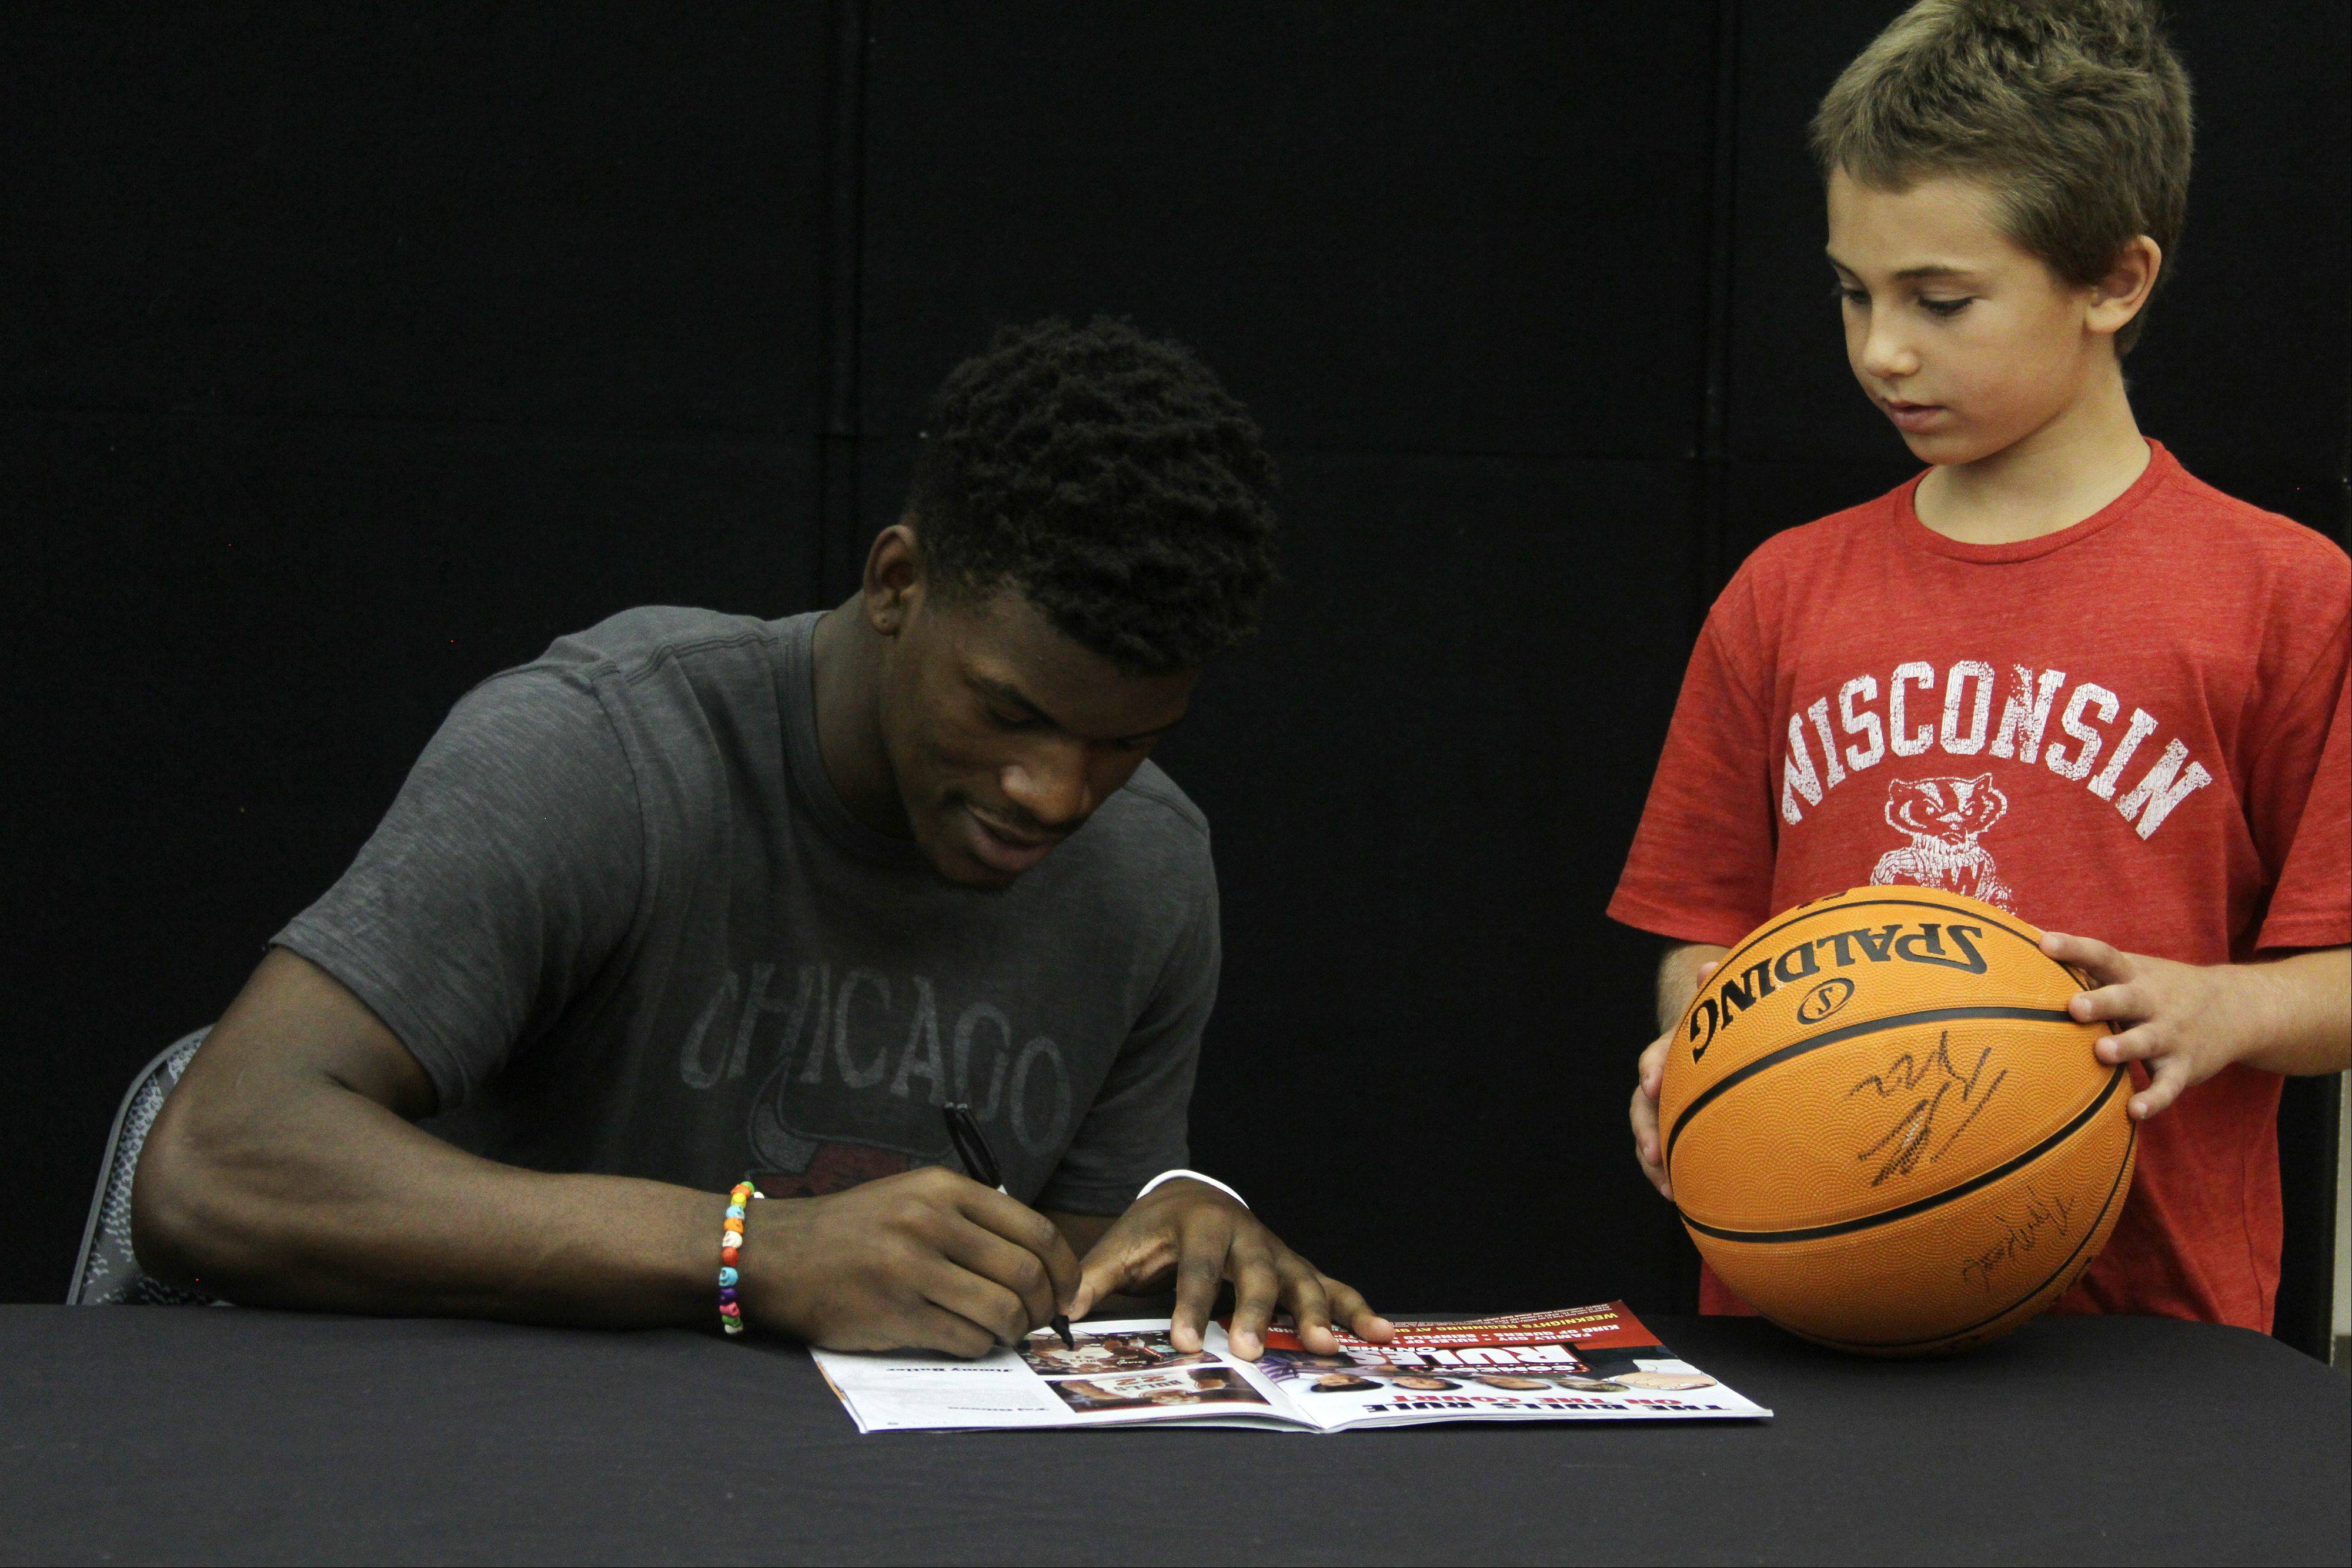 Jimmy Butler of the Chicago Bulls signs a book for camper Simon Schwartz, 8, Friday during an appearance at the Bulls/Sox Academy in Lisle. Butler spent more than an hour giving kids high-fives, posing for photos and signing memorabilia.